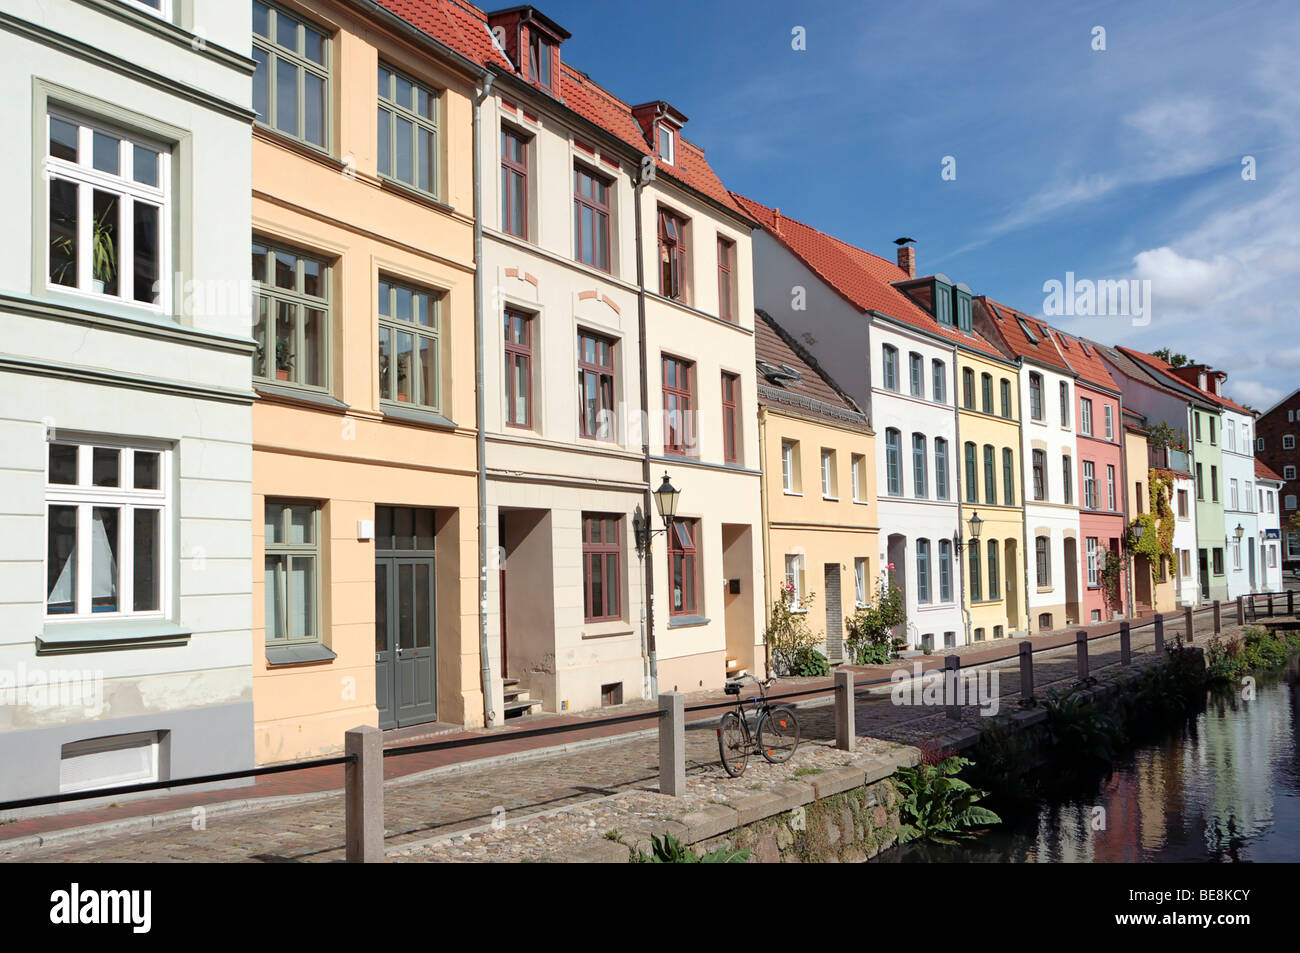 Historic row of buildings alongside the Frische Grube canal in the Hanseatic city of Wismar, UNESCO World Heritage - Stock Image